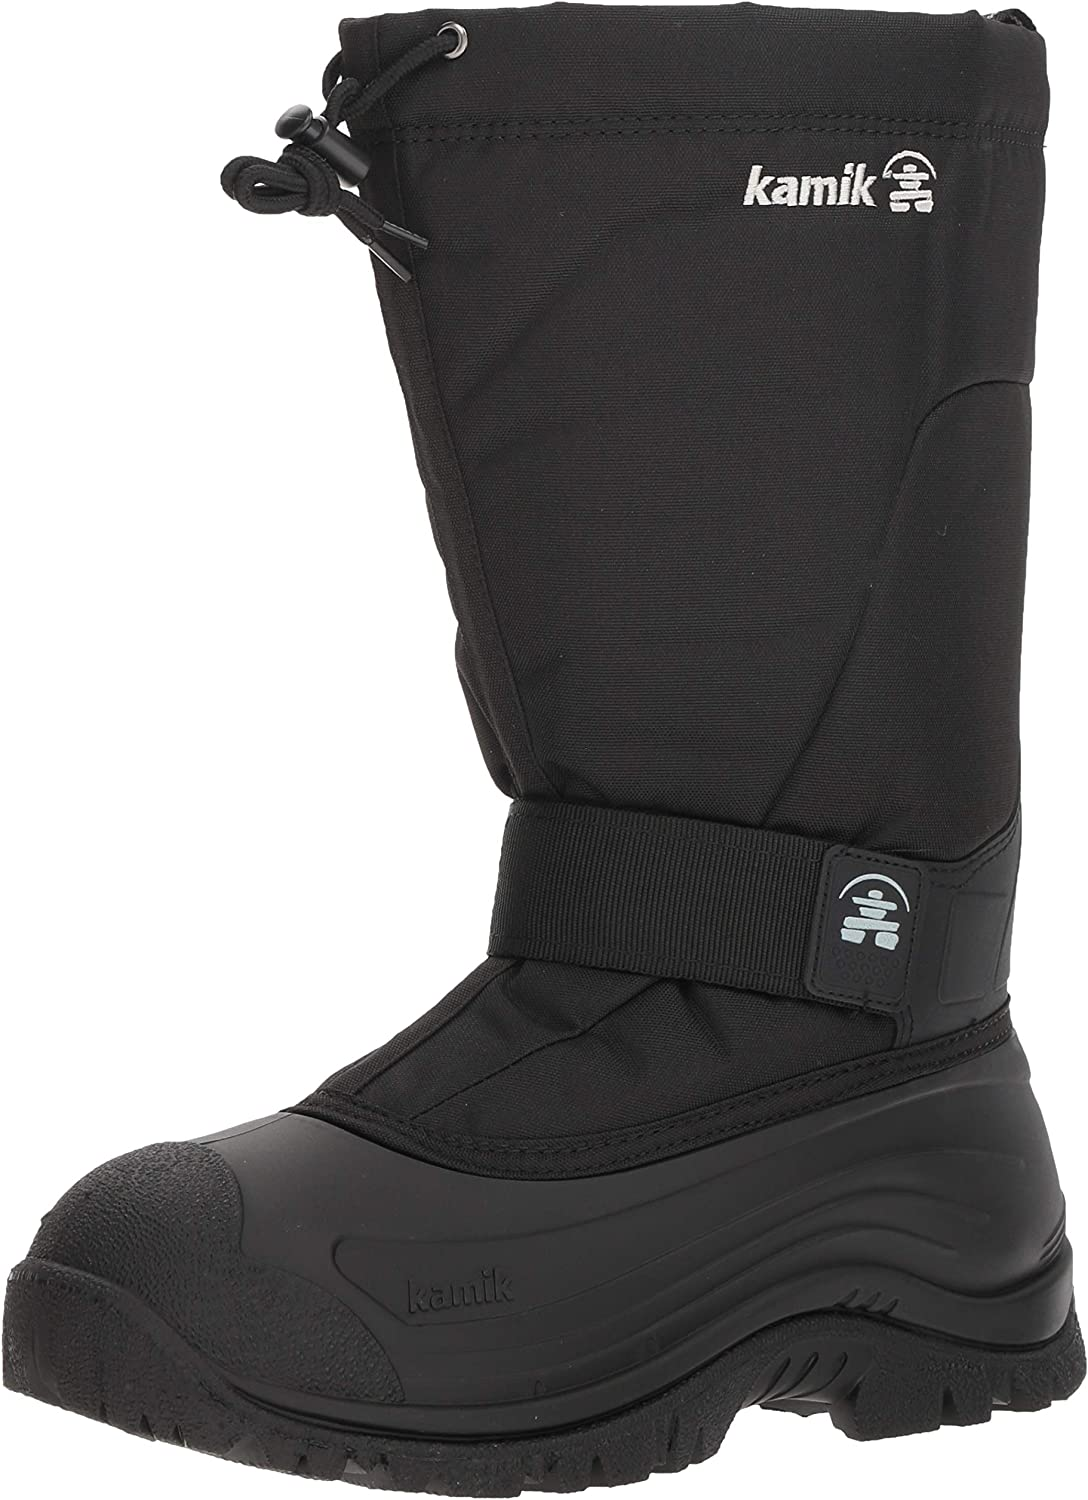 Kamik Greenbay 4 2021 spring and summer new Wide Inventory cleanup selling sale Black Boot Mens